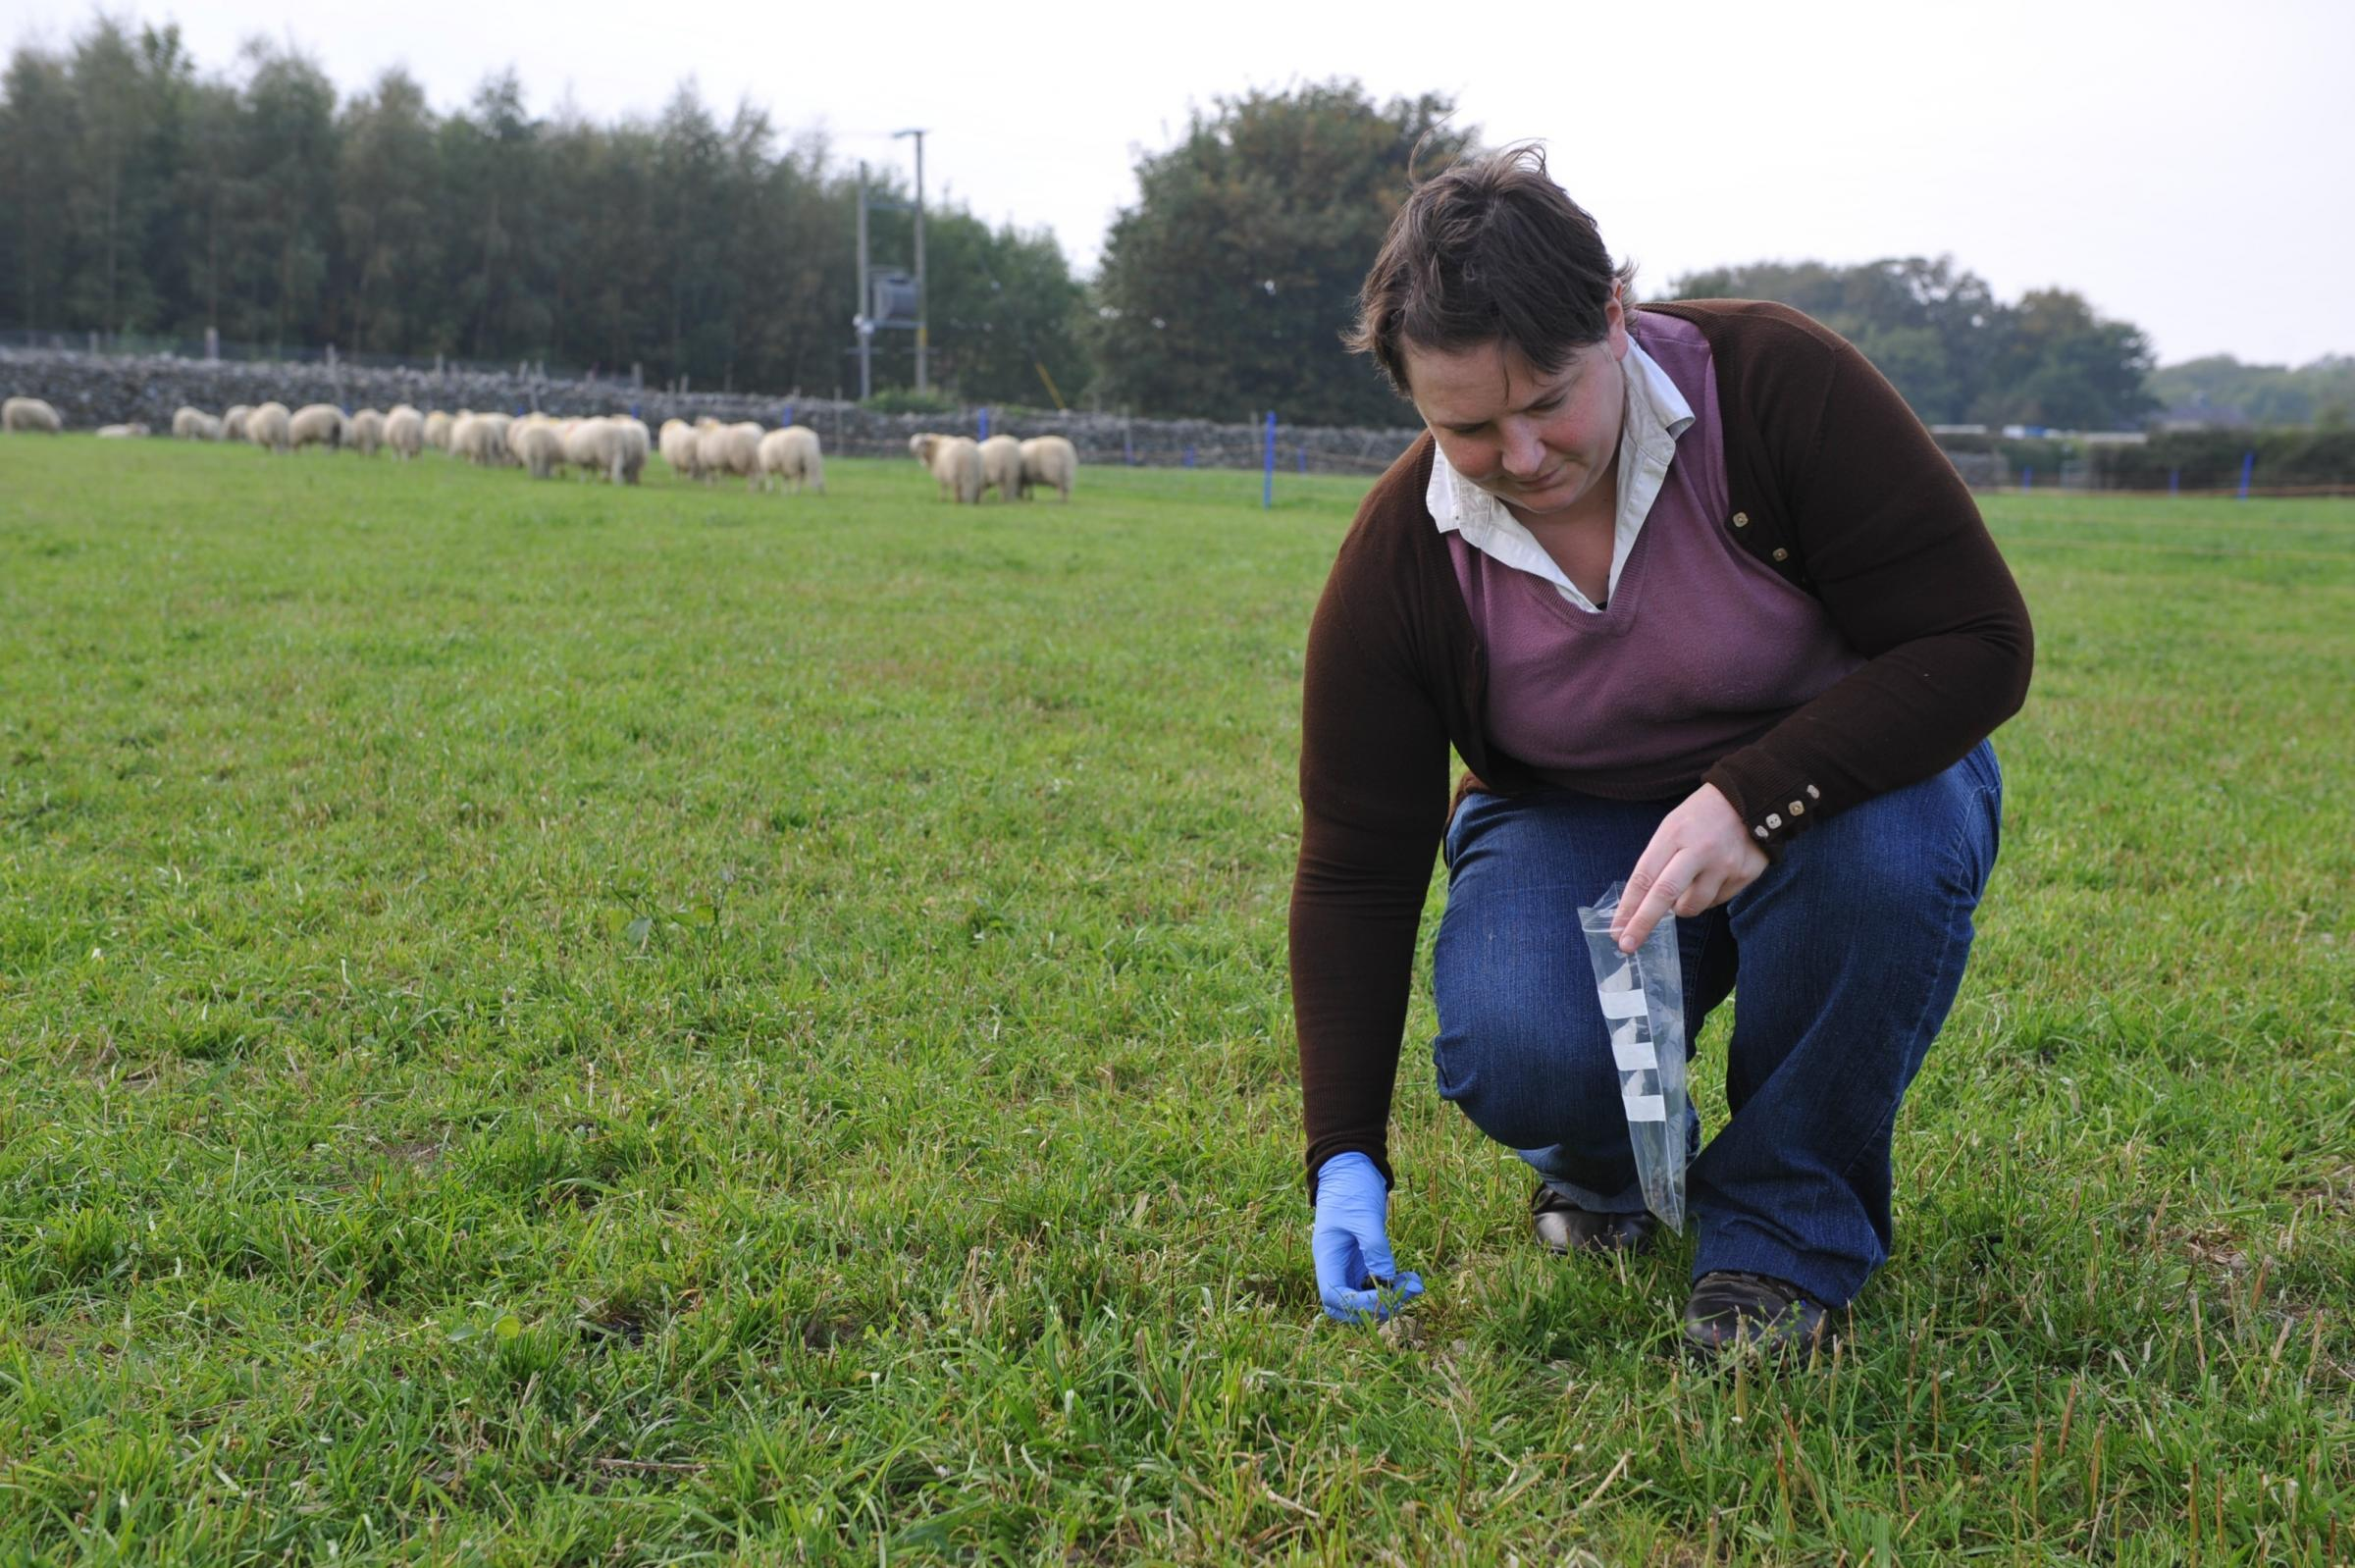 Test dung samples for the presence of fluke eggs PICTURE: Debbie James